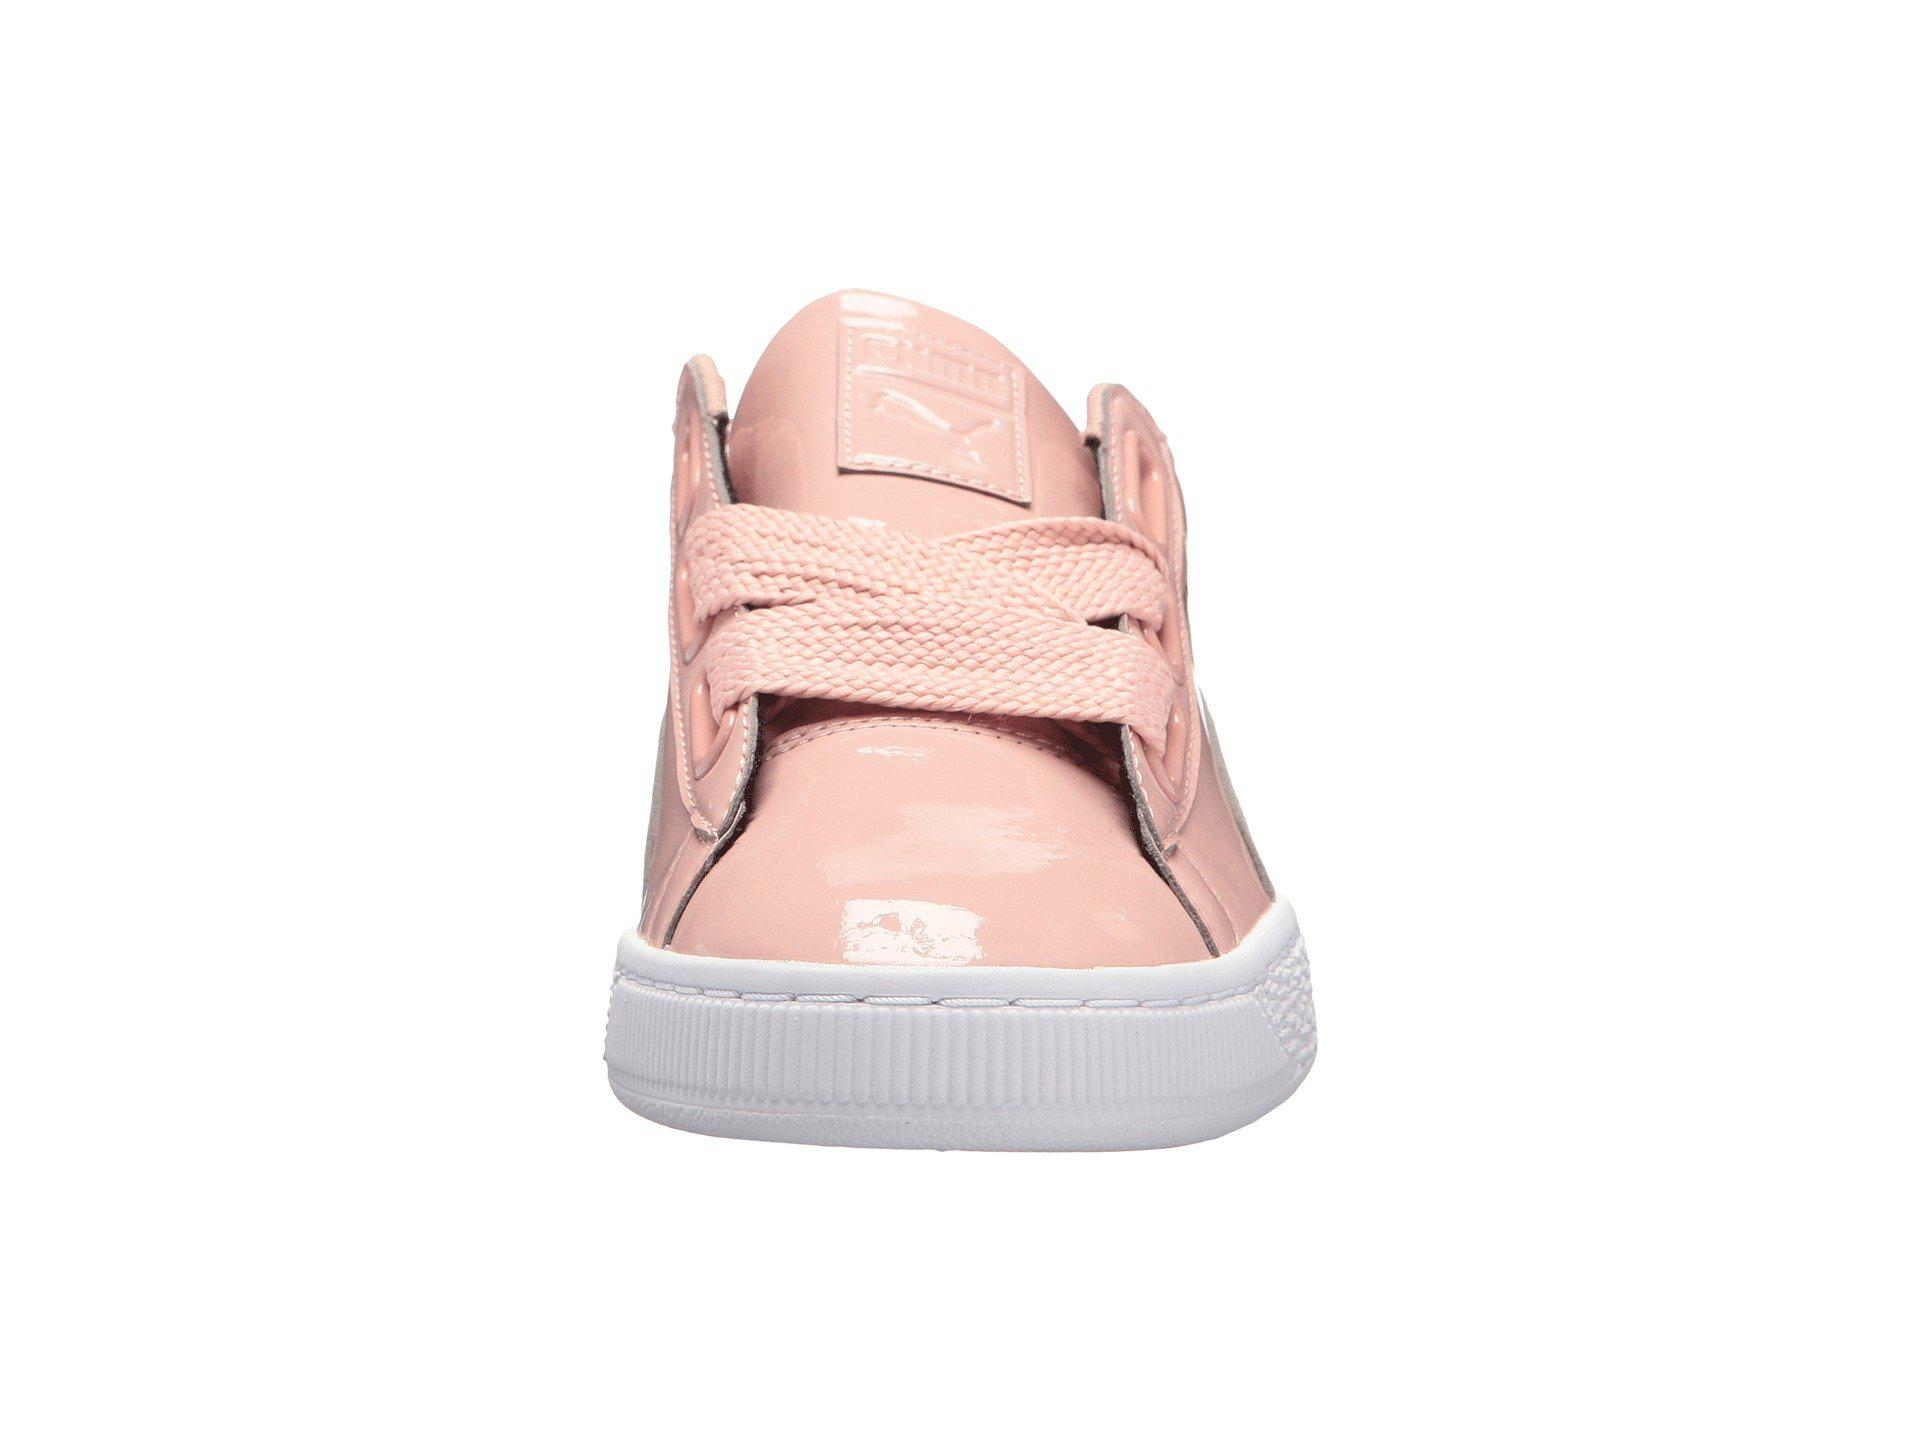 0c9a9bff0a2159 Lyst - Puma Basket Heart Patent - Save 20.33898305084746%